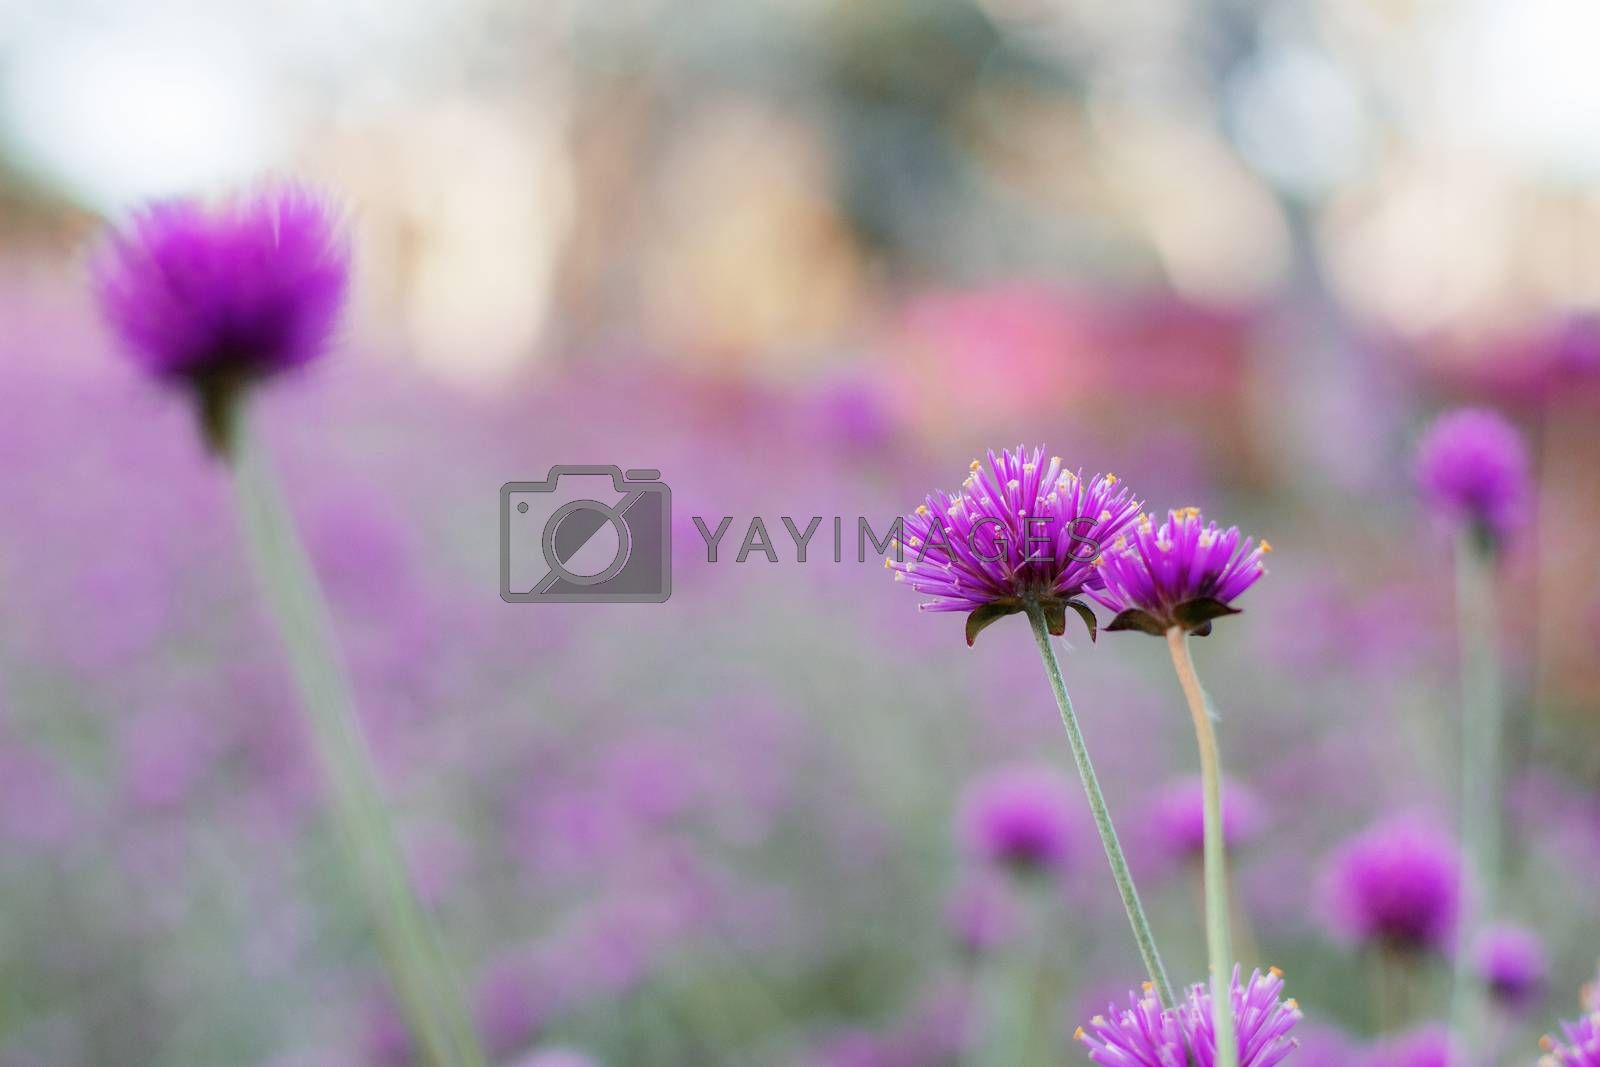 Pink thistle flower on blurred natural background.